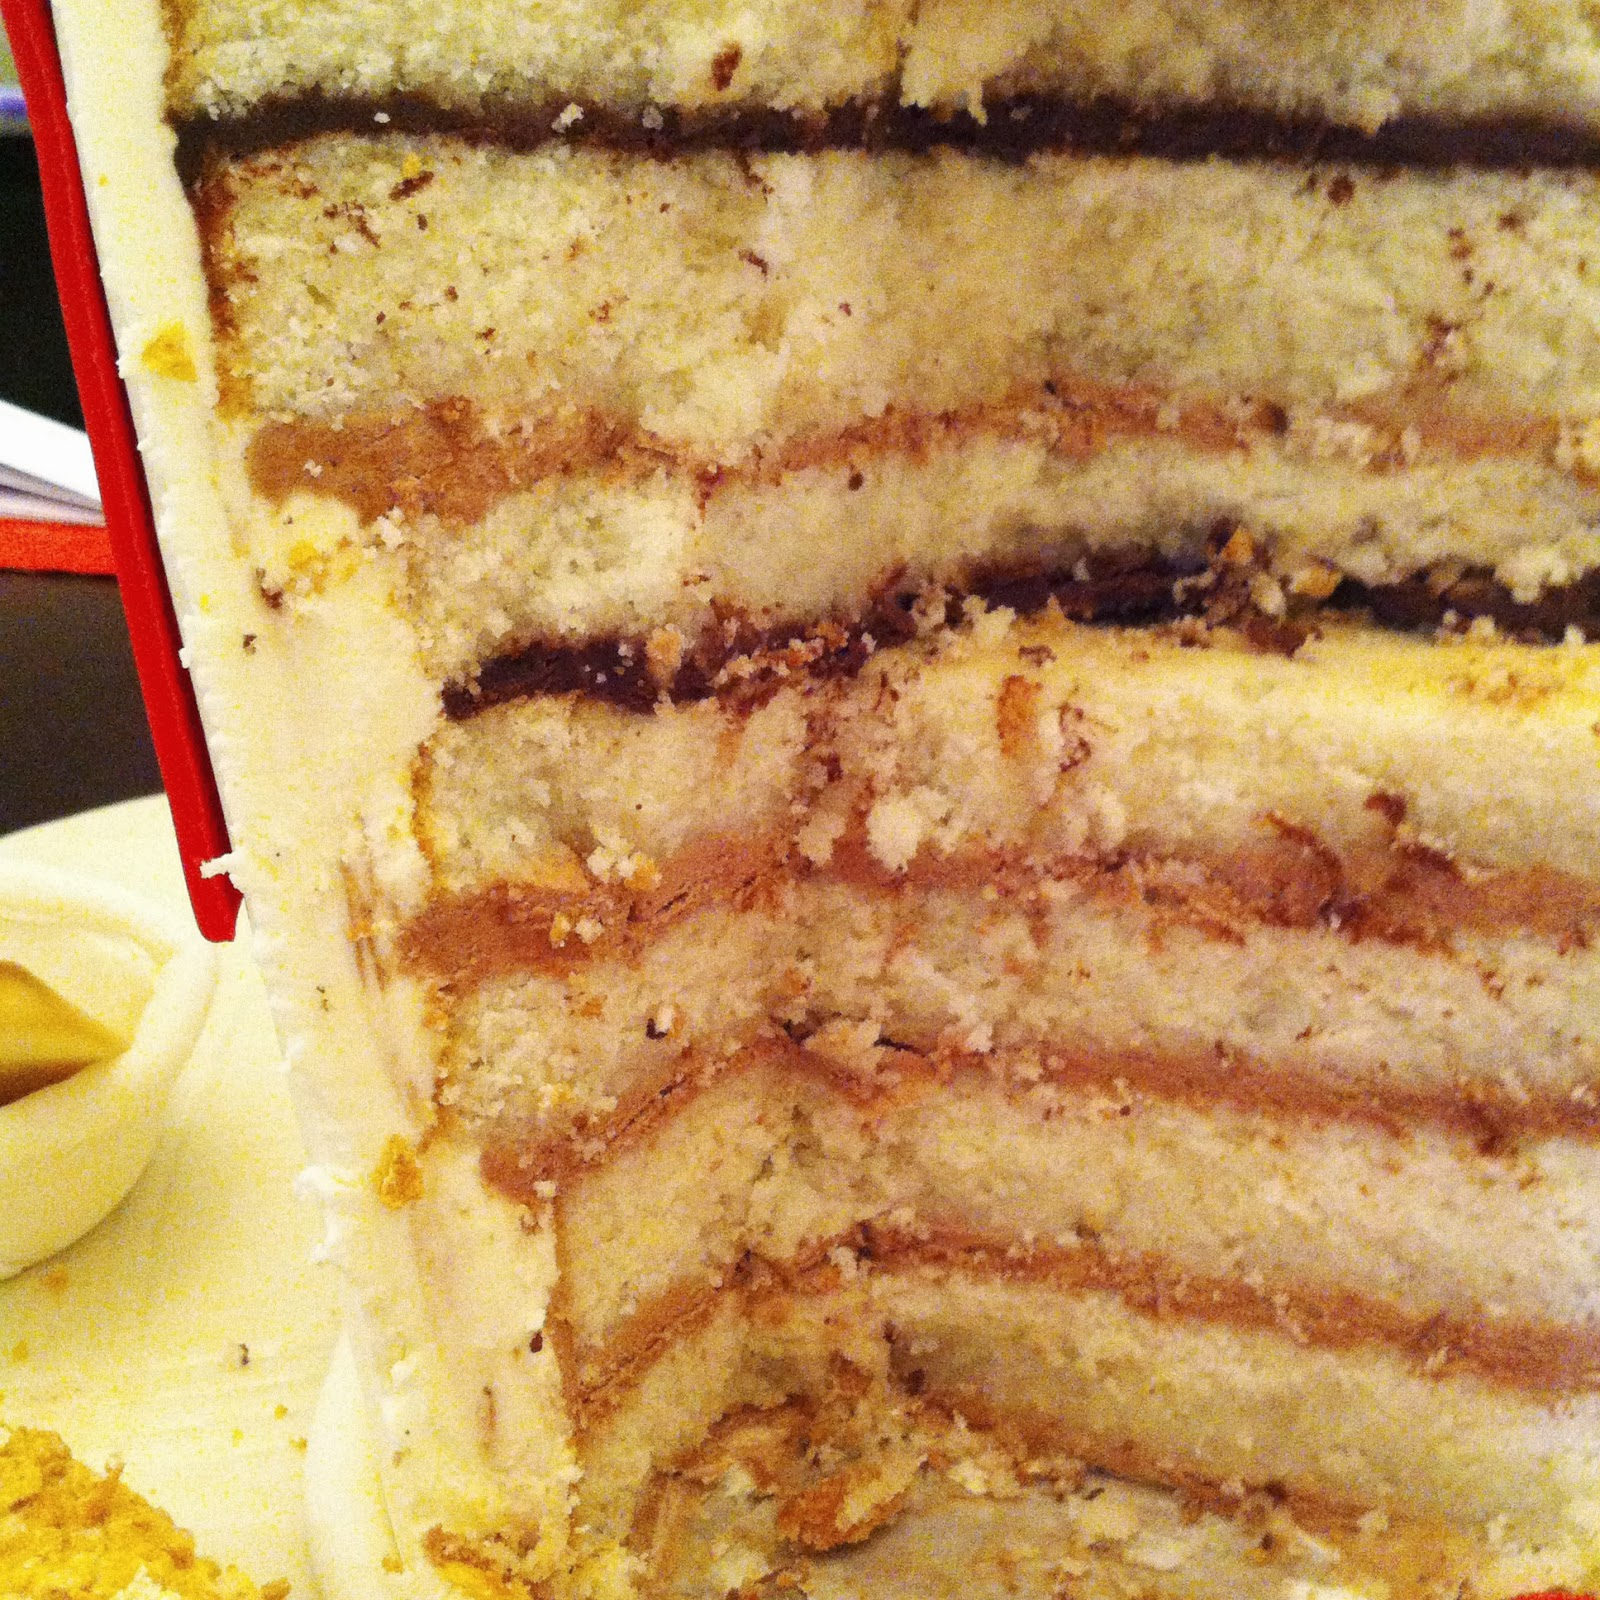 Inside shot of KFC cake